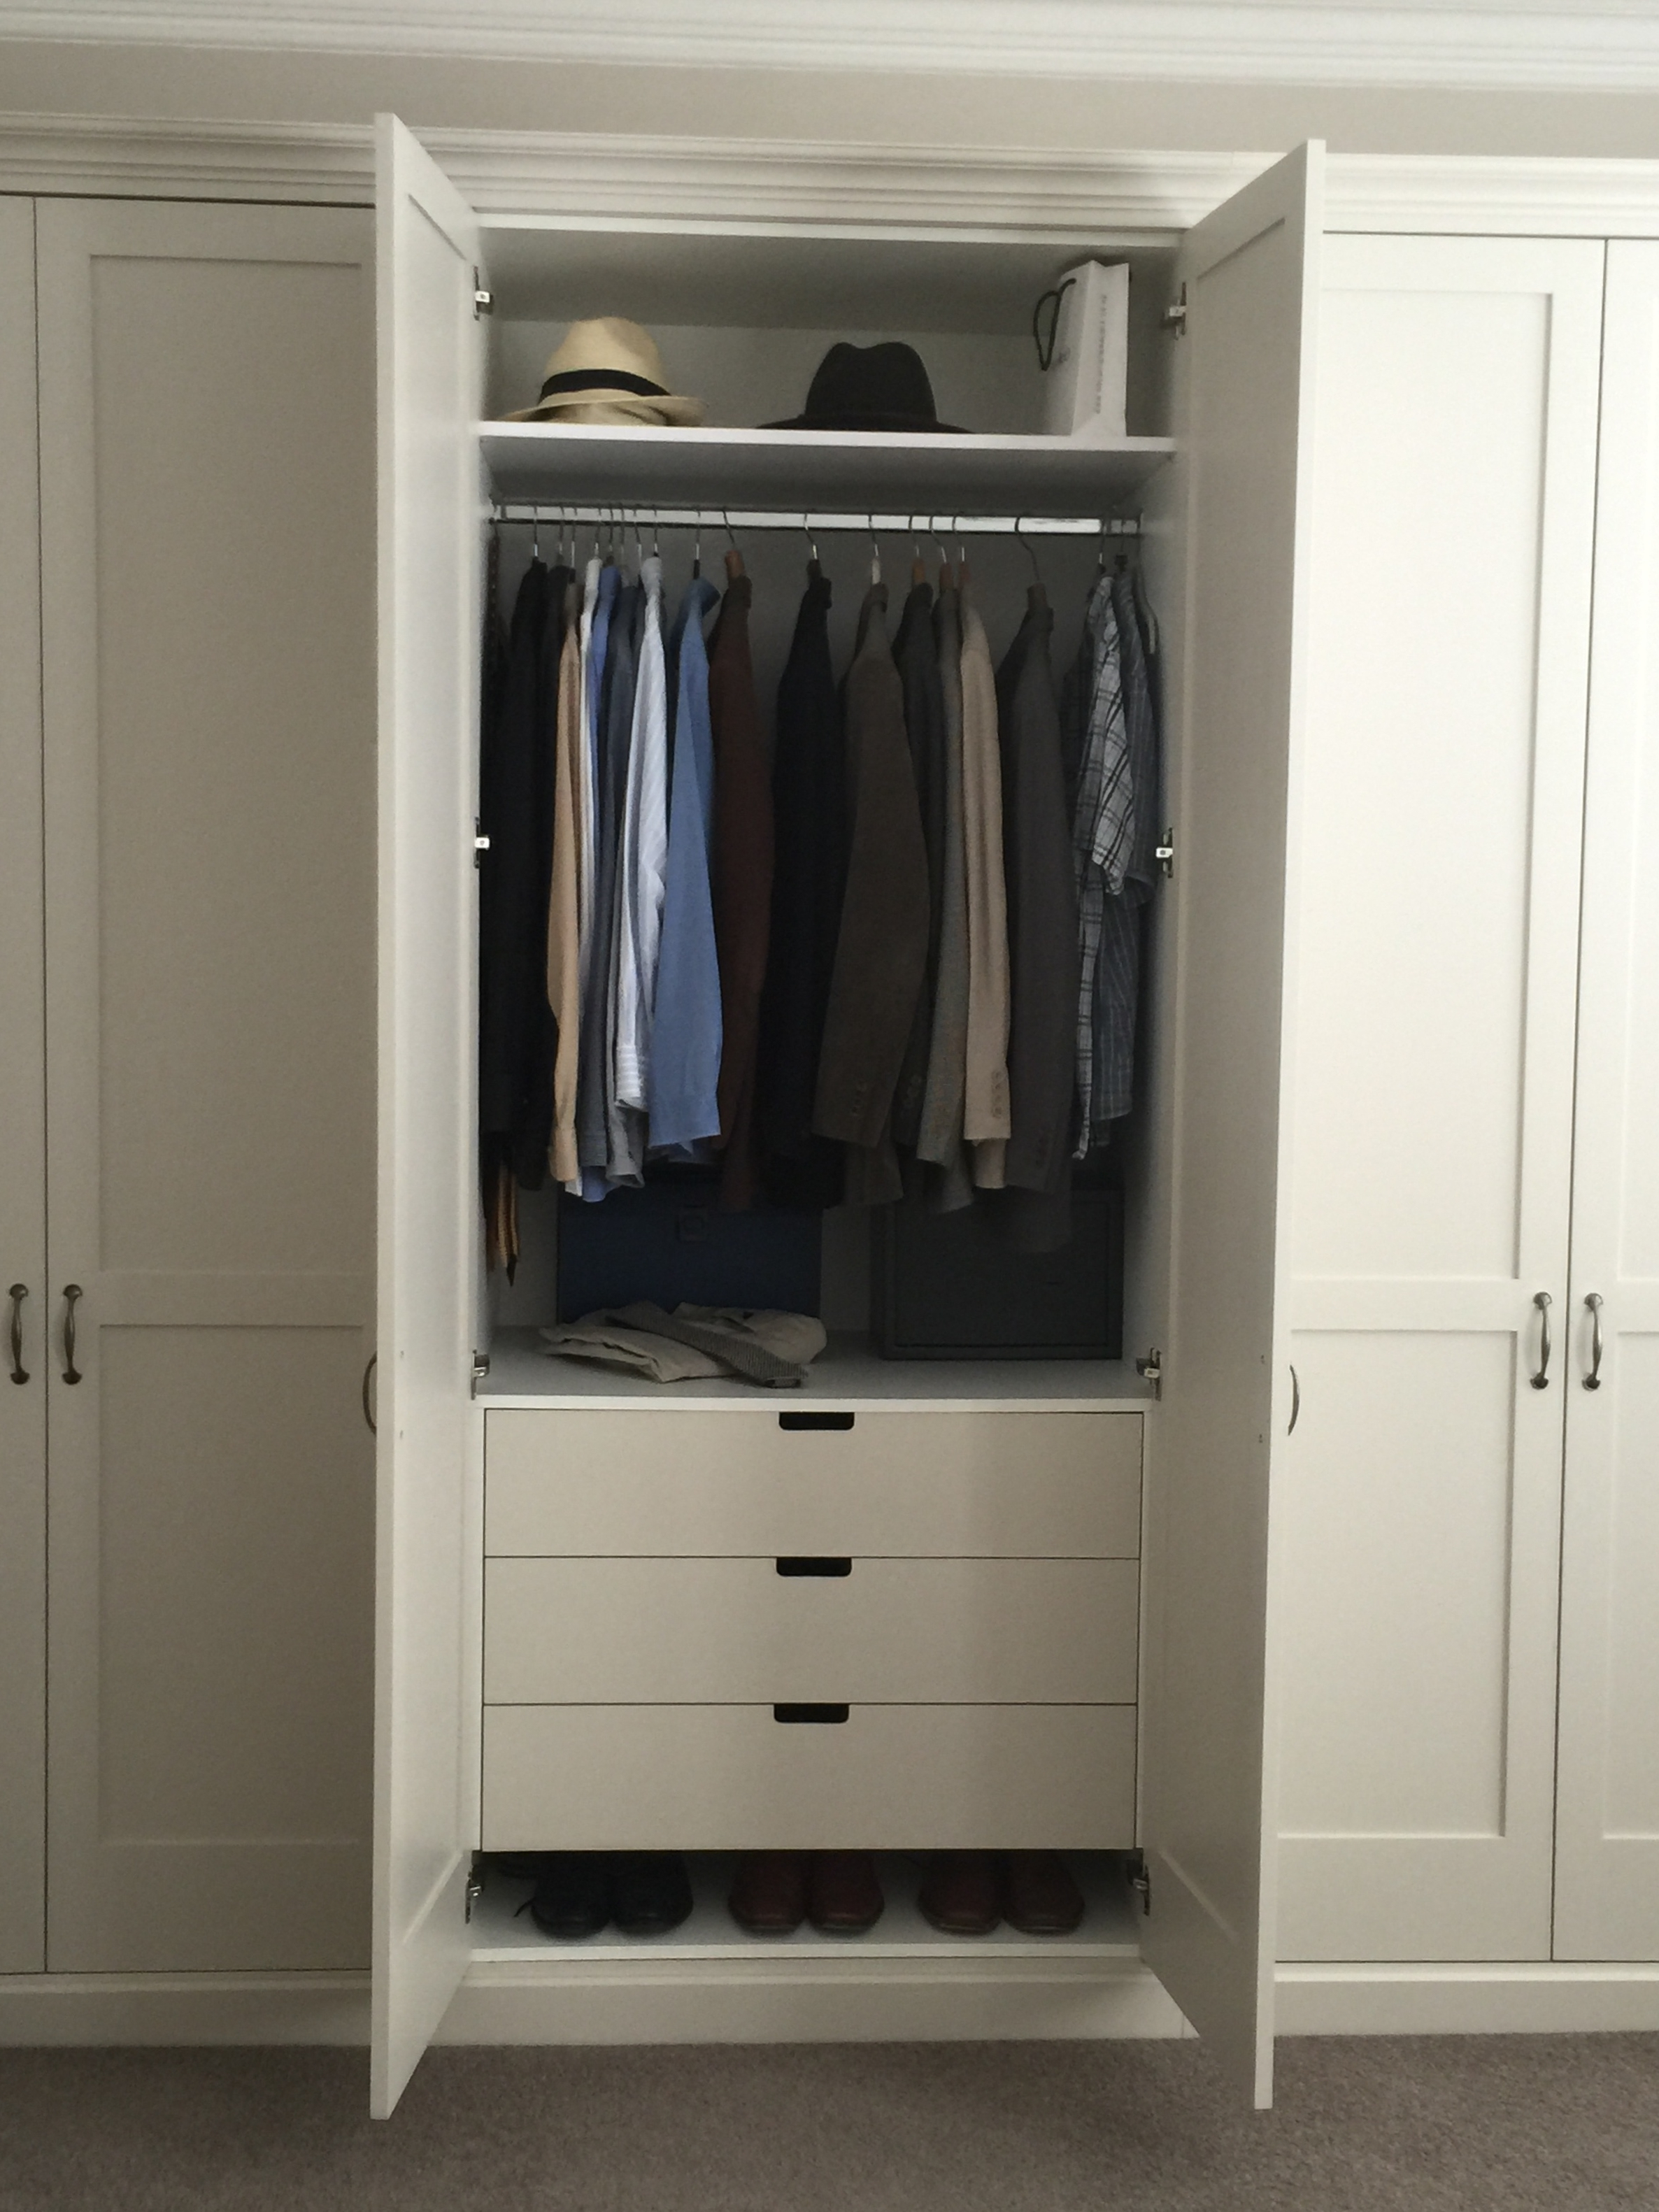 Traditional Shaker Wardrobes, With Drawers Inside, Shelves And Throughout 2018 Wardrobe With Shelves And Drawers (View 4 of 15)